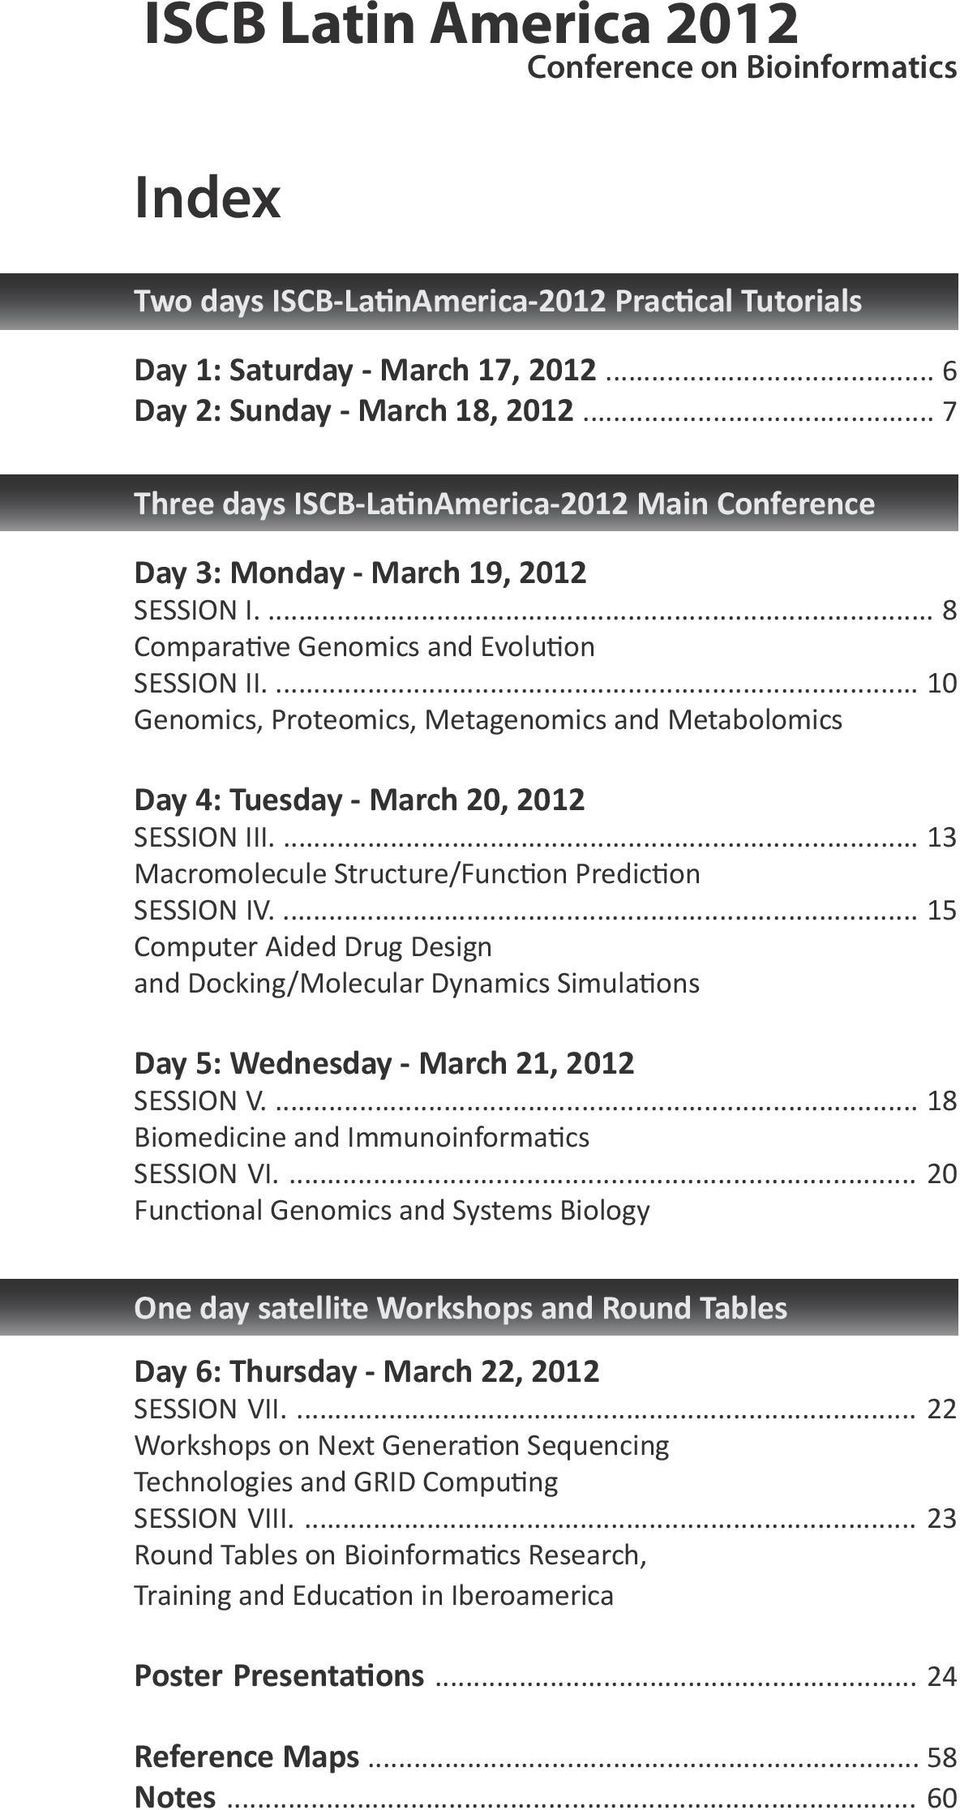 ... 10 Genomics, Proteomics, Metagenomics and Metabolomics Day 4: Tuesday - March 20, 2012 SESSION III.... 13 Macromolecule Structure/Function Prediction SESSION IV.